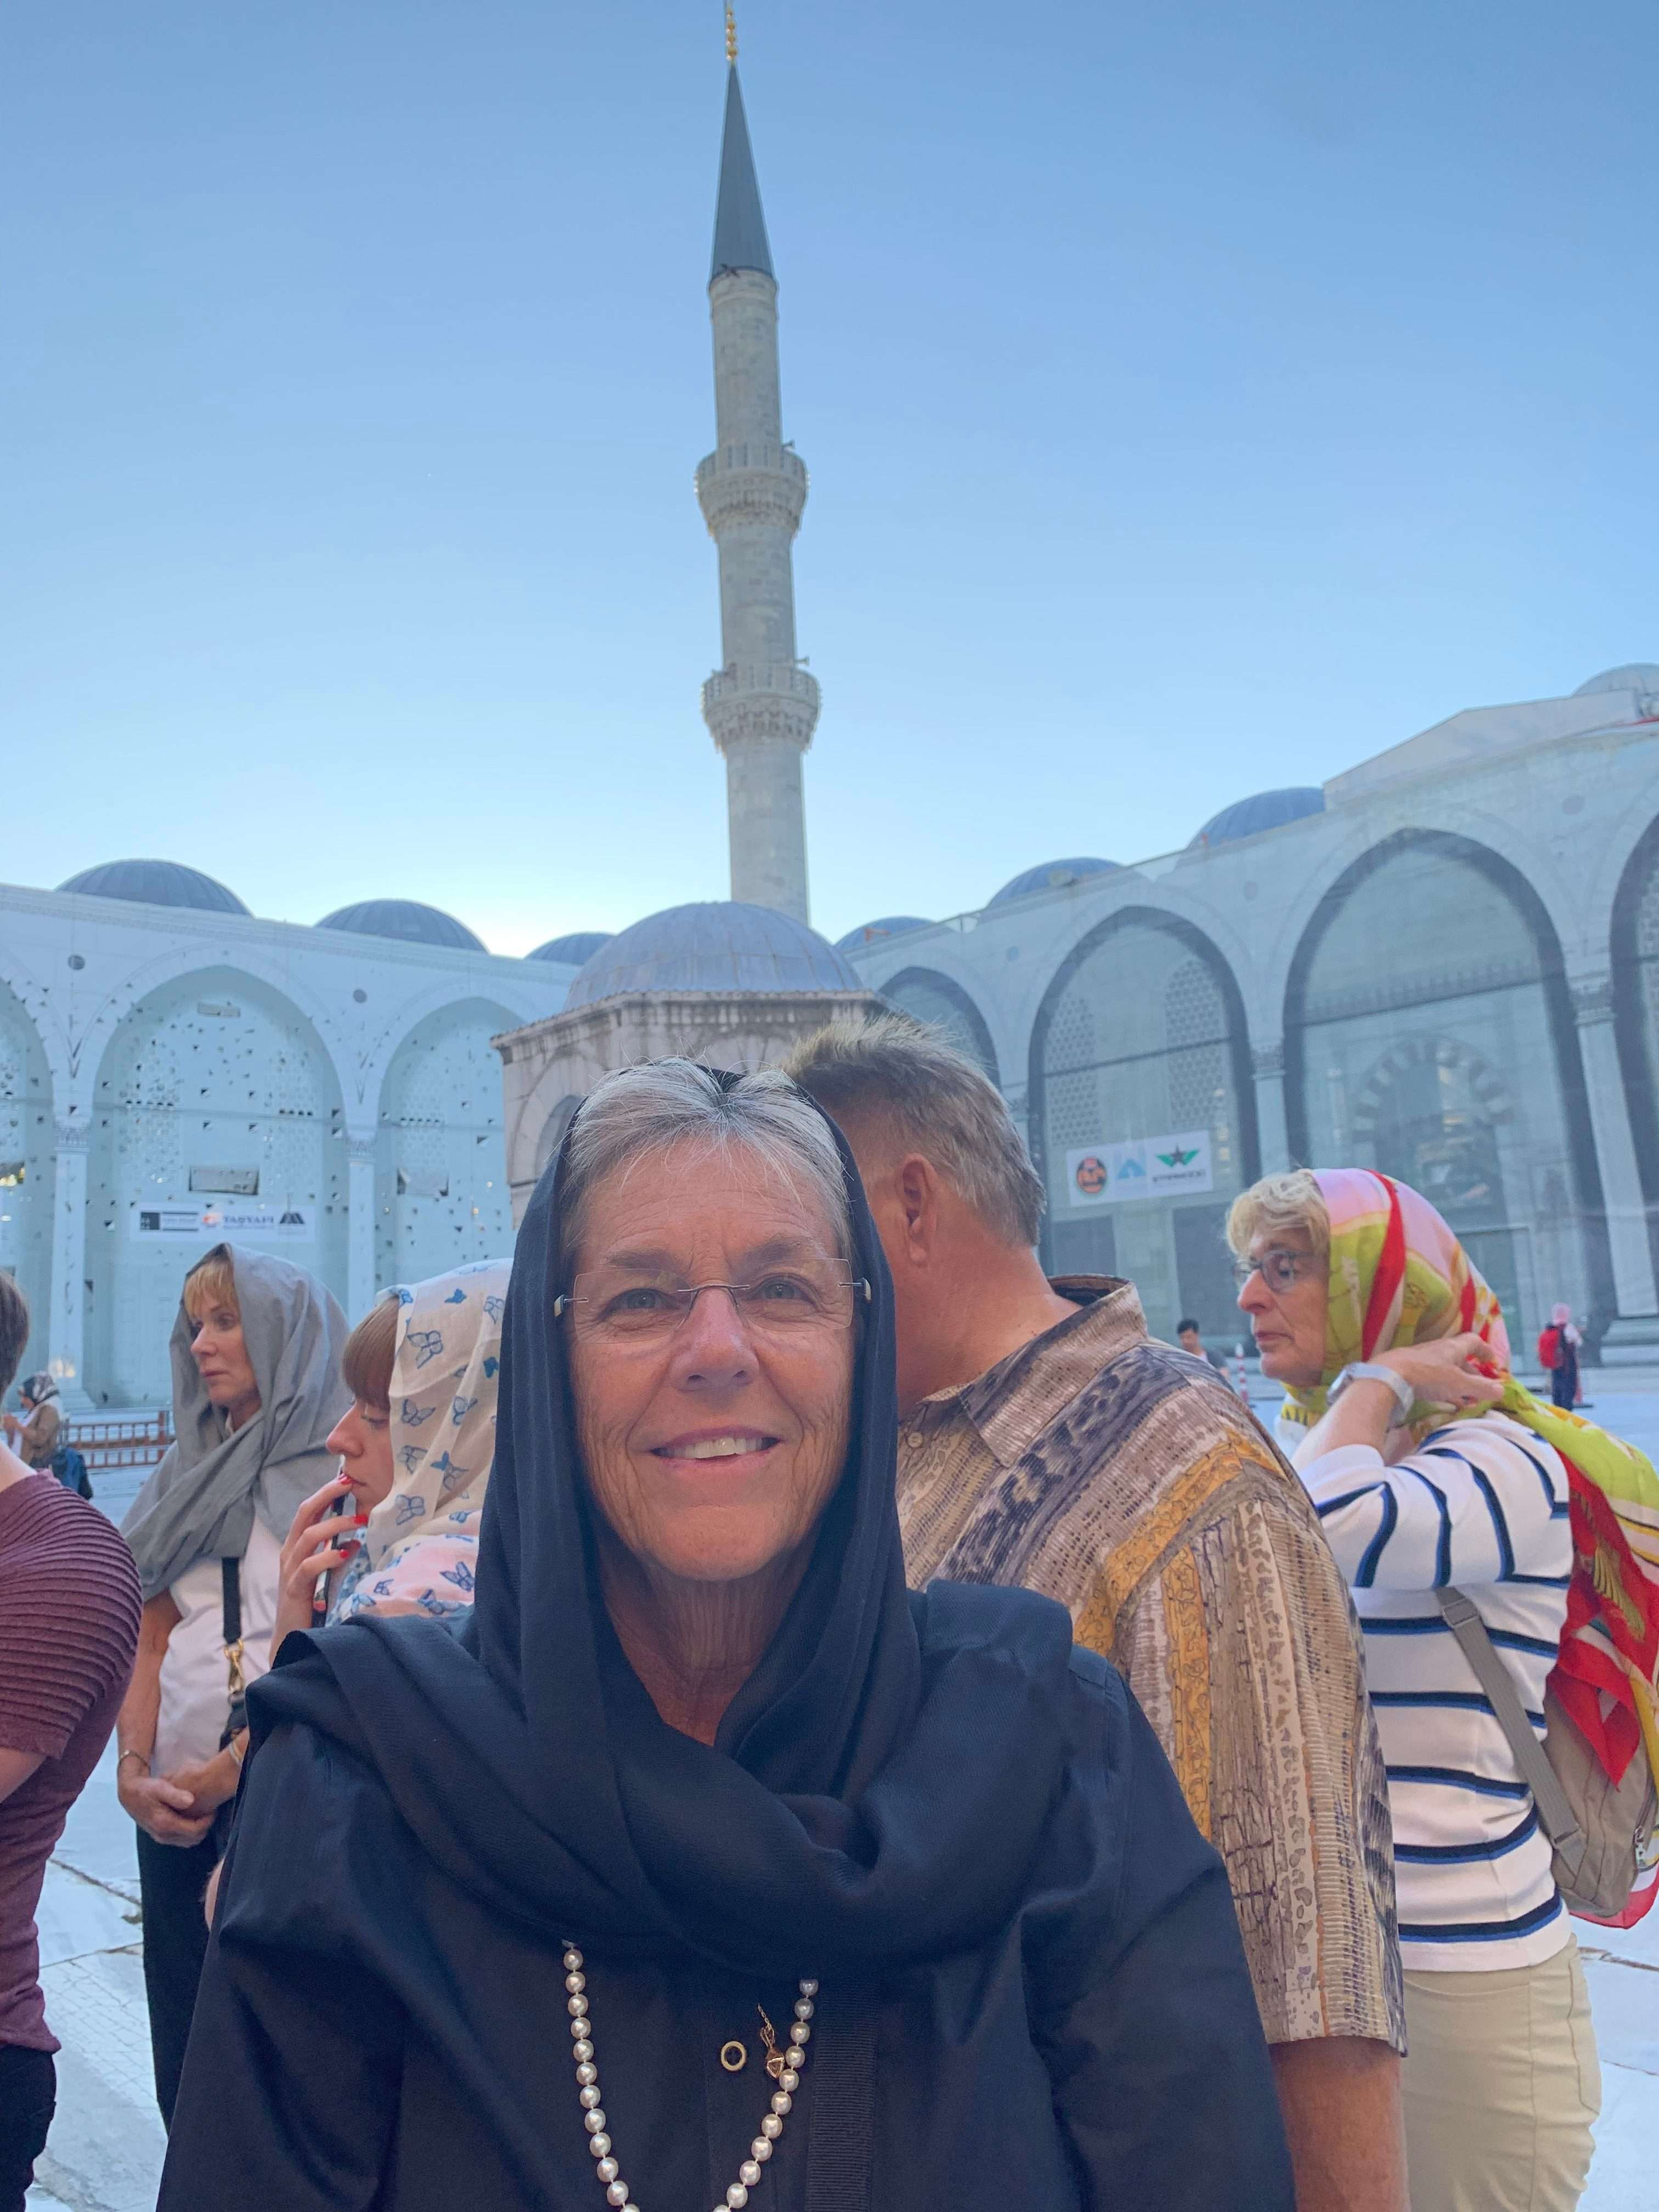 Sue dressed to enter the Blue Mosque